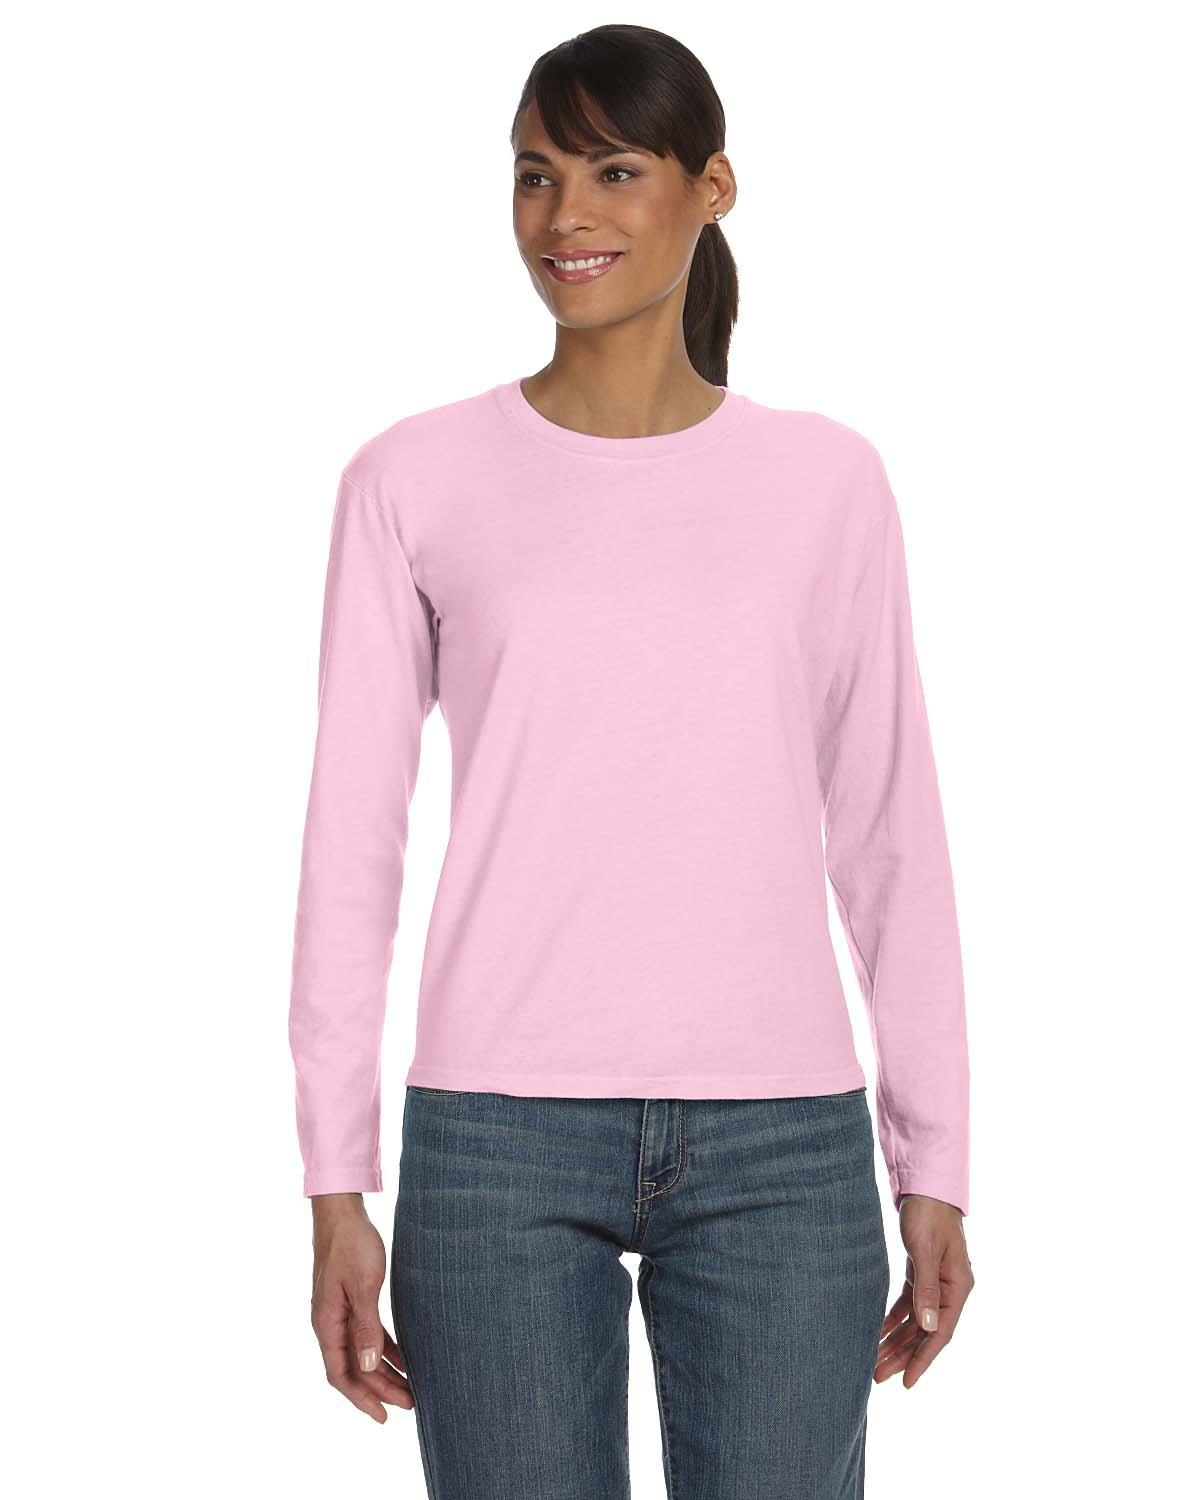 c0e0a512a Comfort Colors C3014 Ladies' Midweight RS Long-Sleeve T-Shirt ...